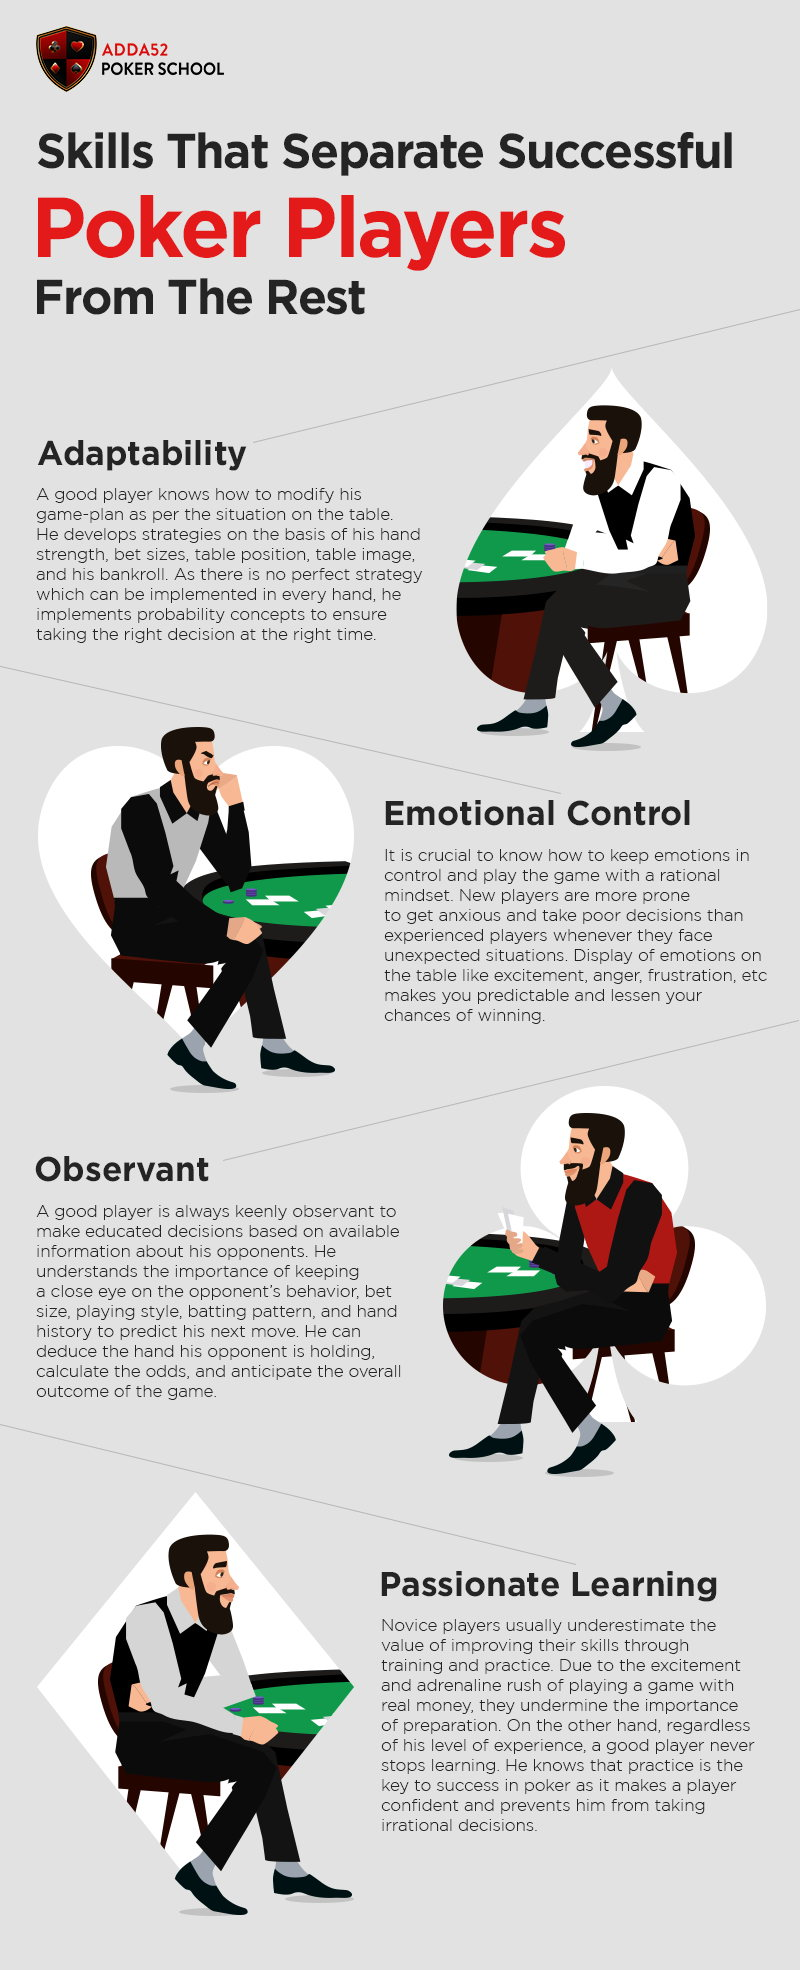 Skills That Separate Successful Poker Players From The Rest